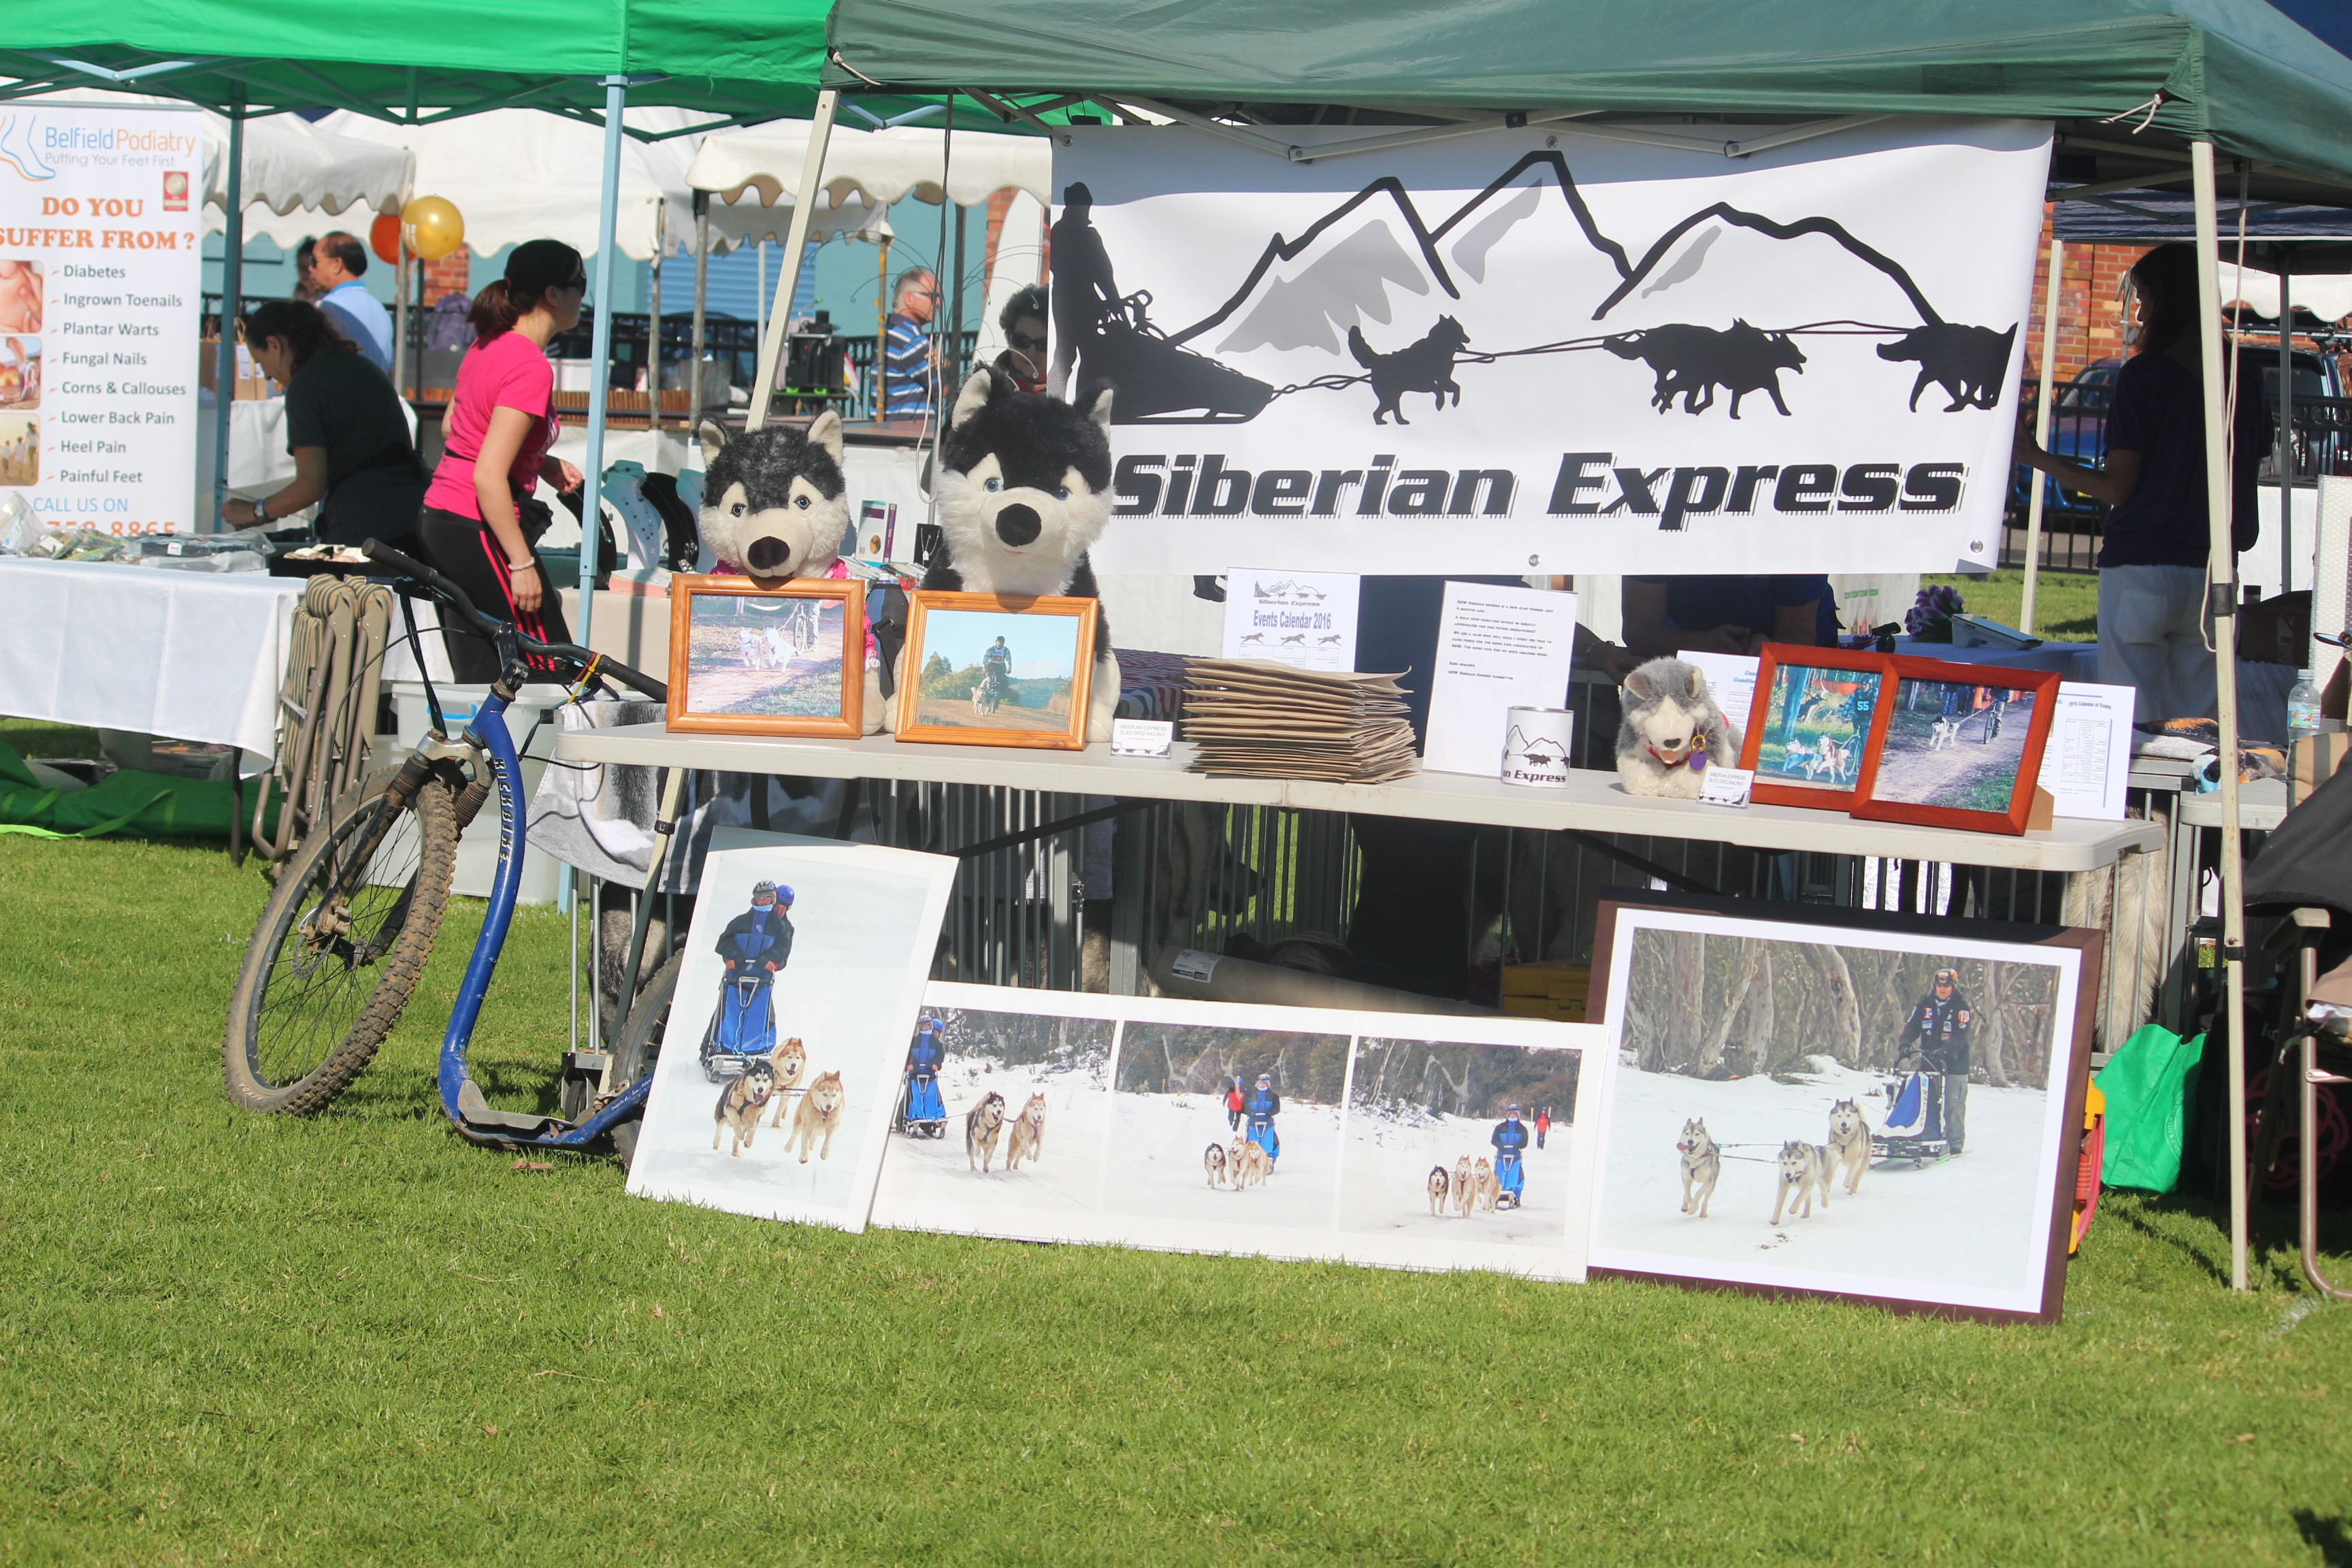 Siberian Express Event Display